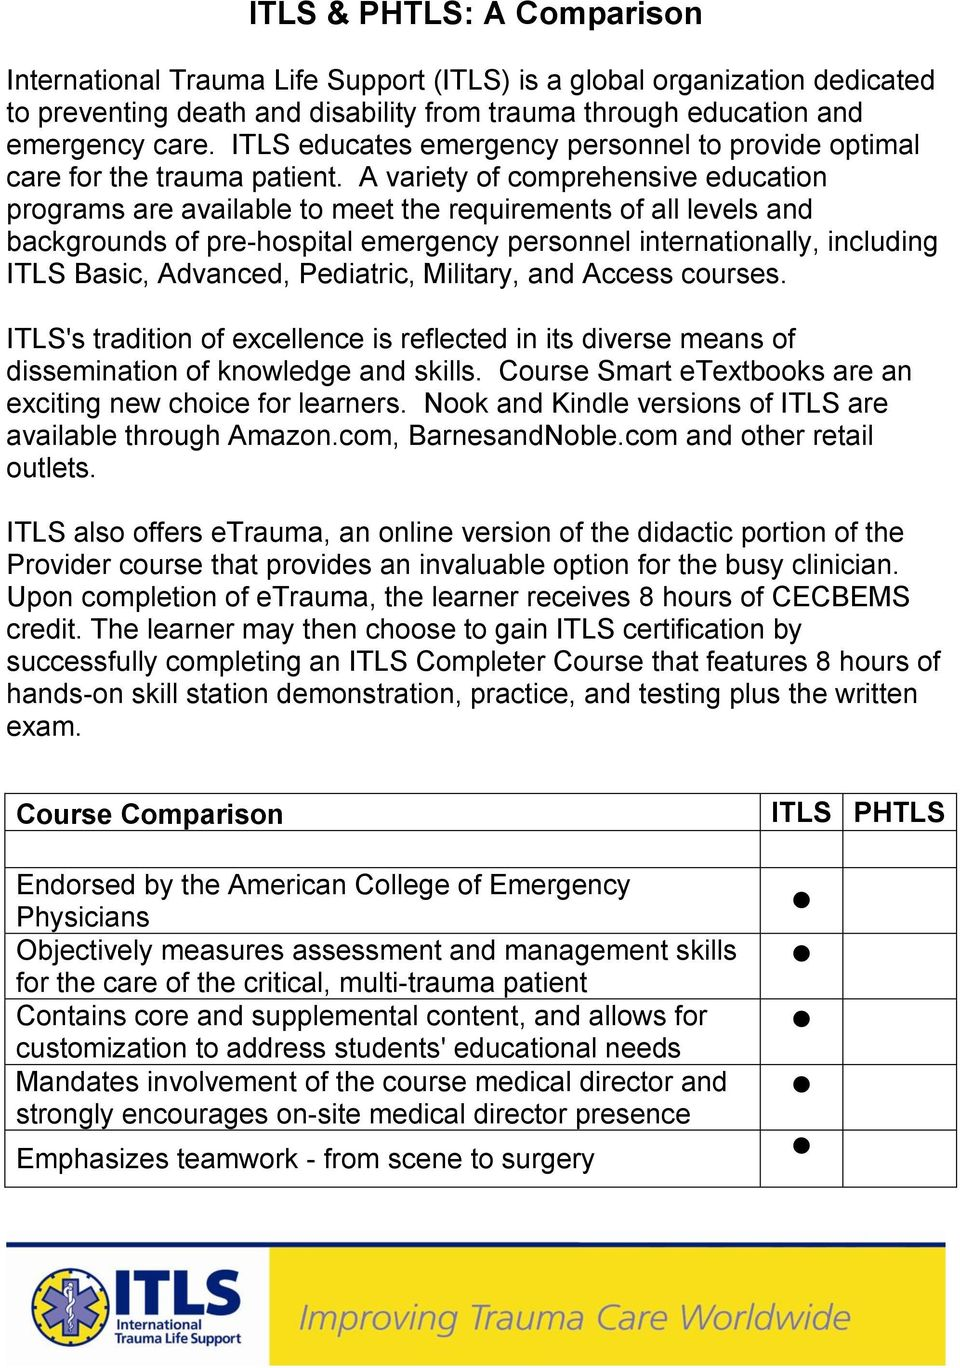 A variety of comprehensive education programs are available to meet the requirements of all levels and backgrounds of pre-hospital emergency personnel internationally, including ITLS Basic, Advanced,